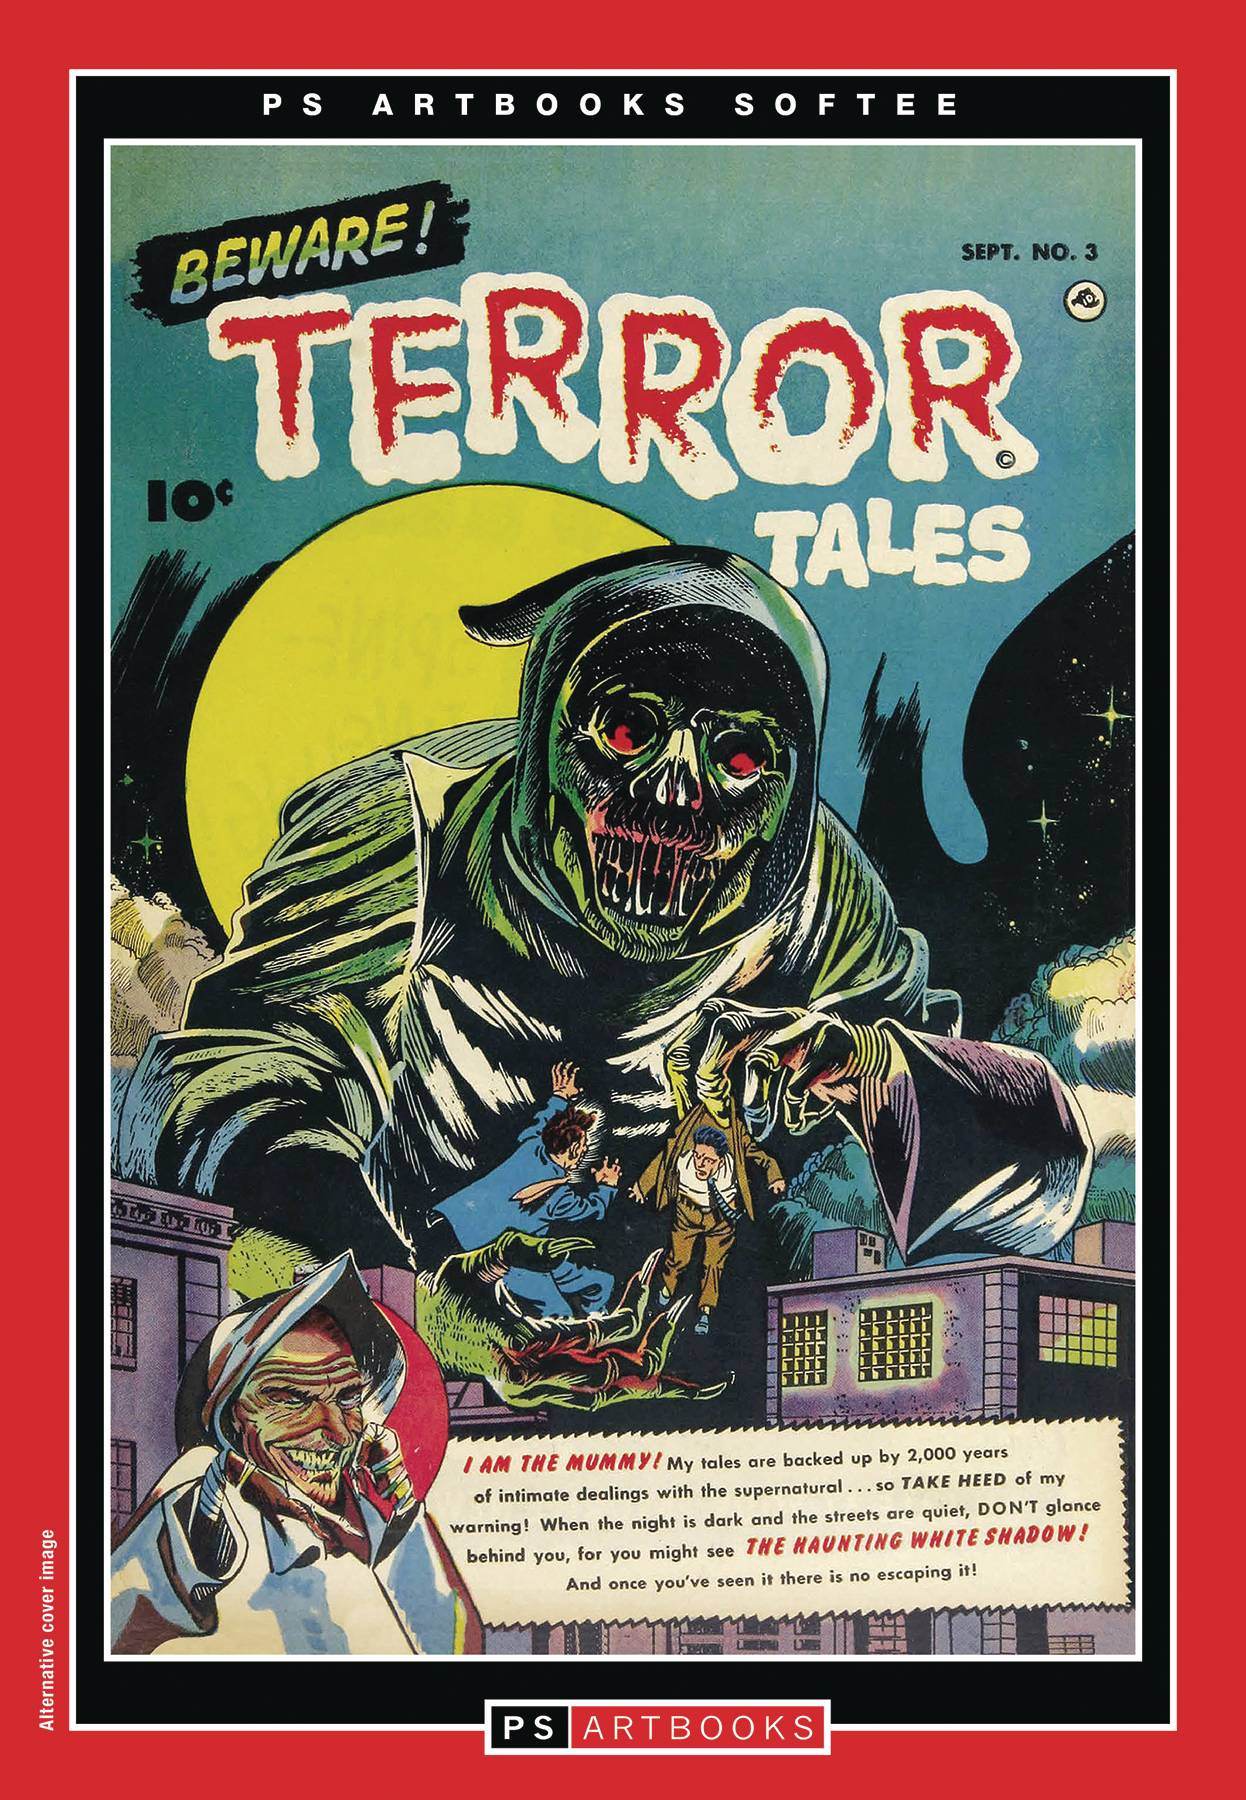 PS ARTBOOKS BEWARE TERROR TALES SOFTEE VOL 01